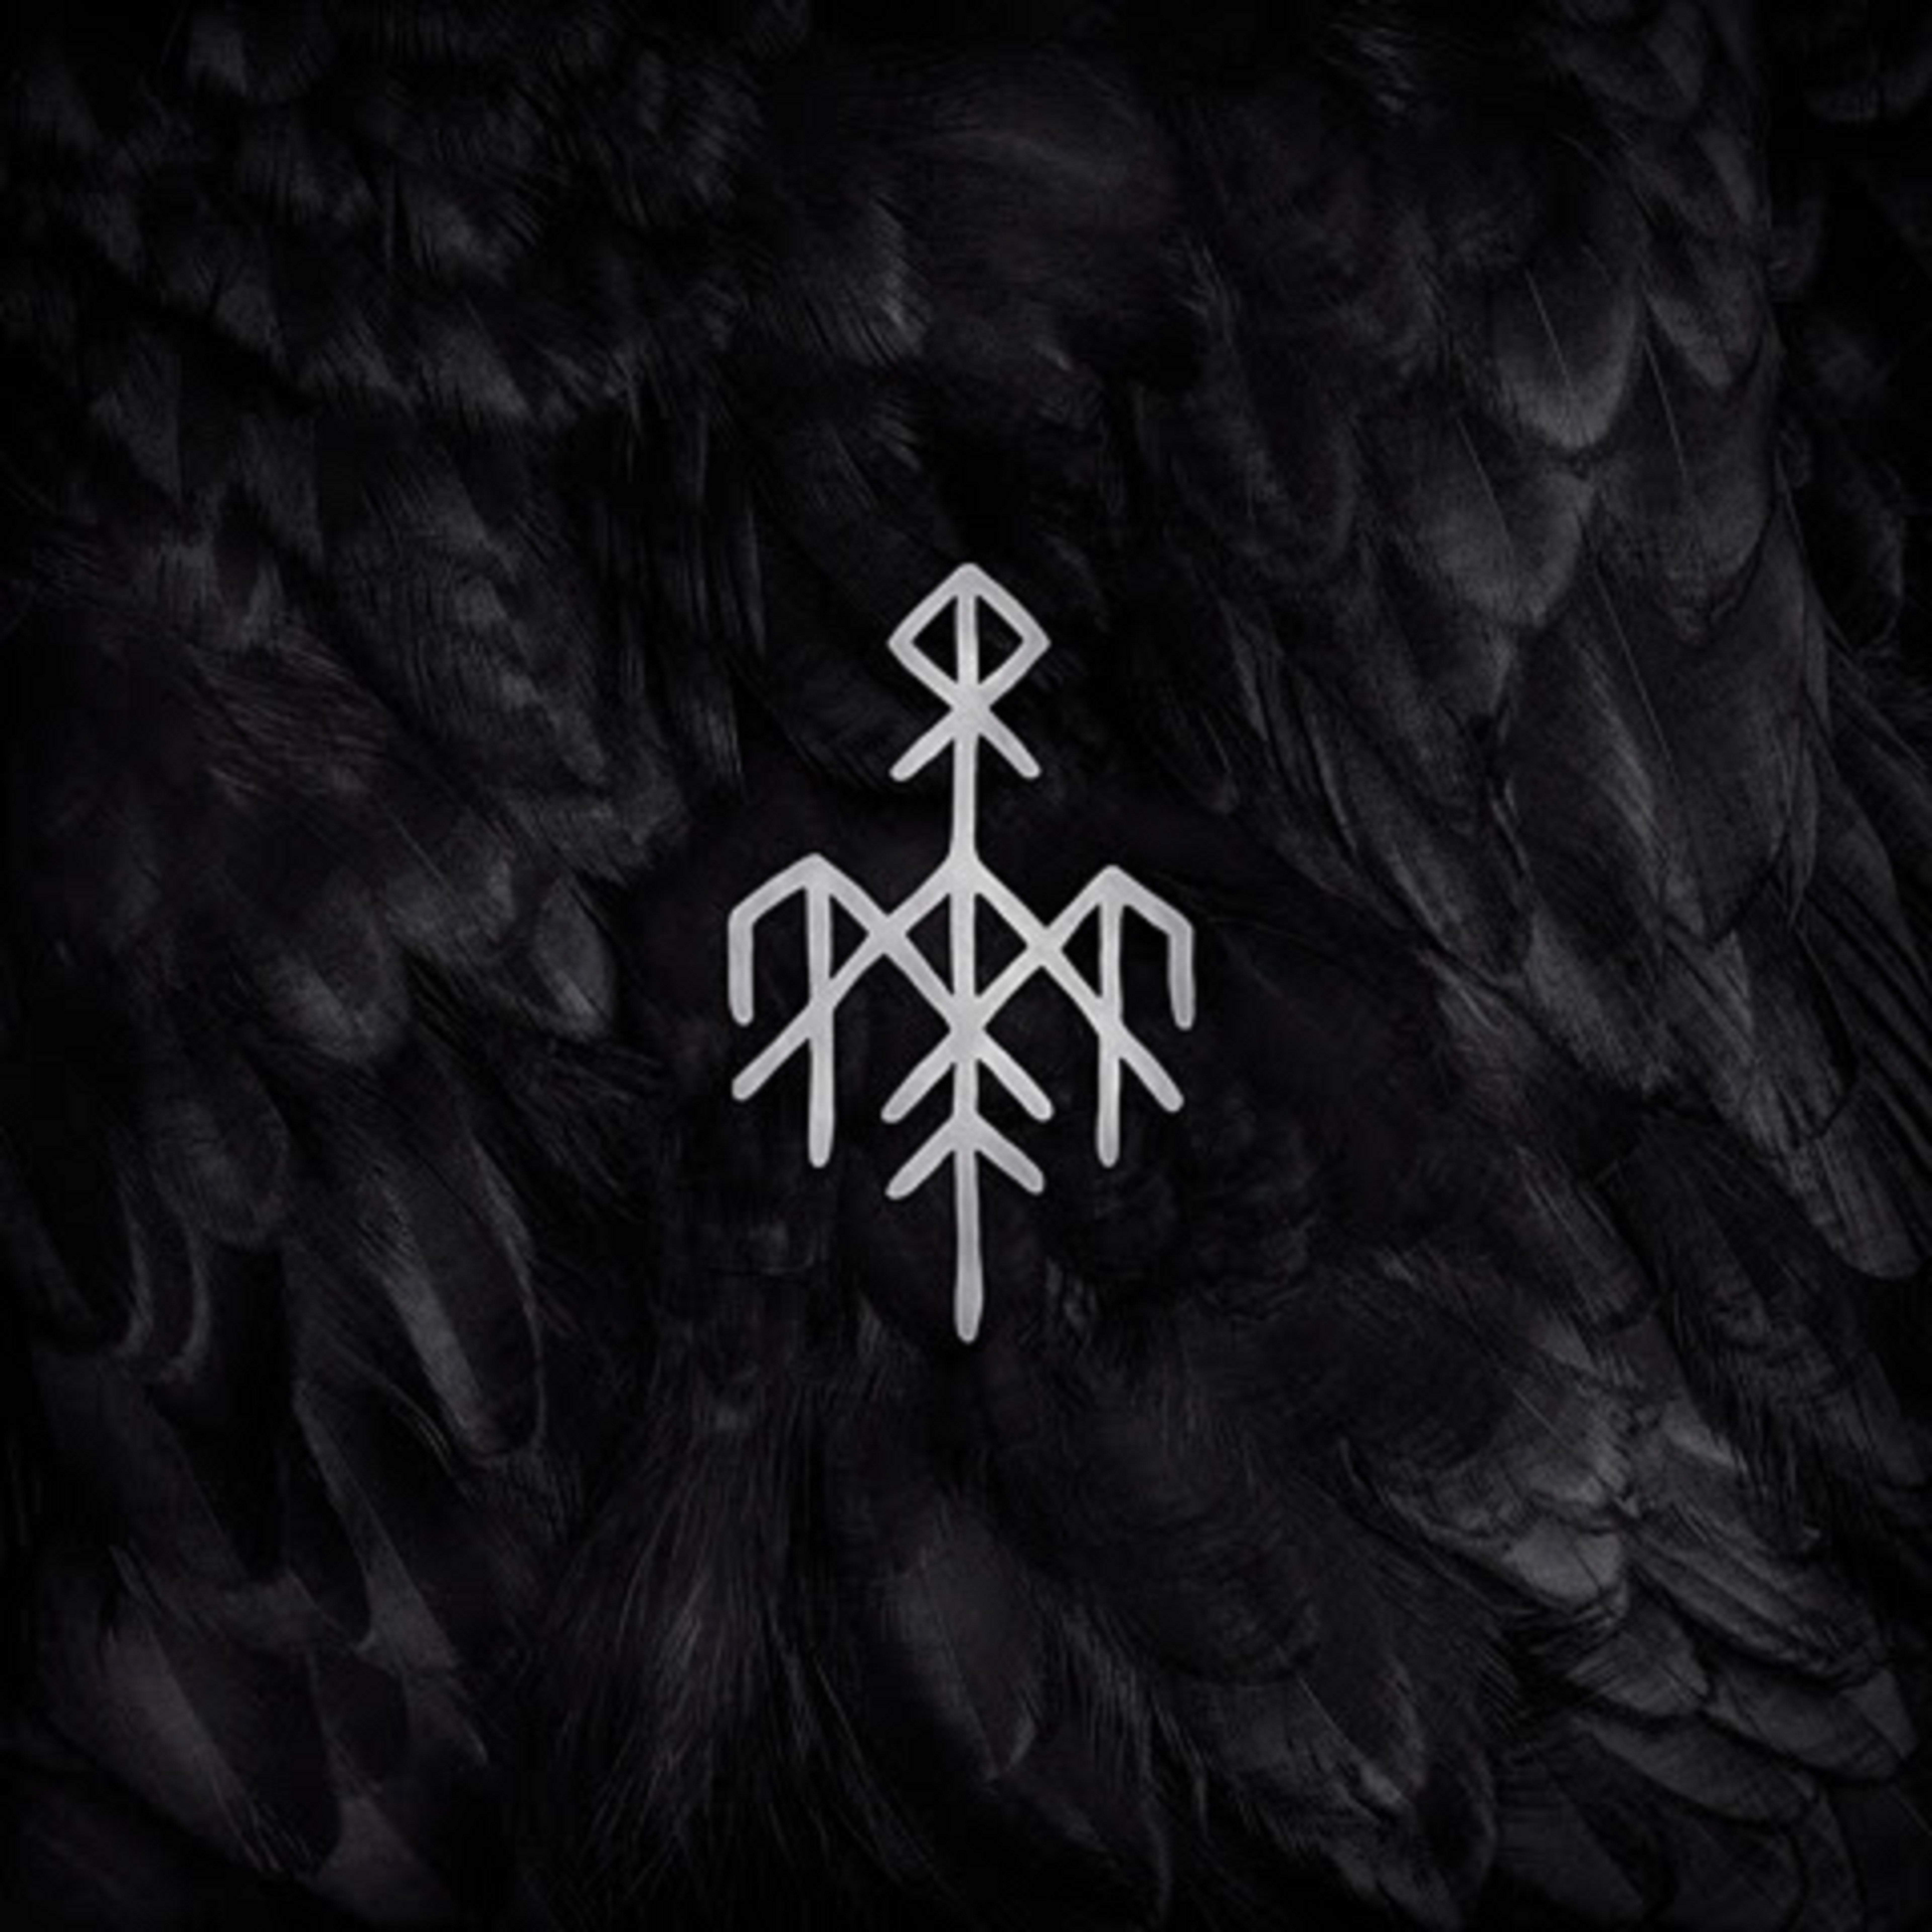 WARDRUNA 'Kvitravn' Out Worldwide Today